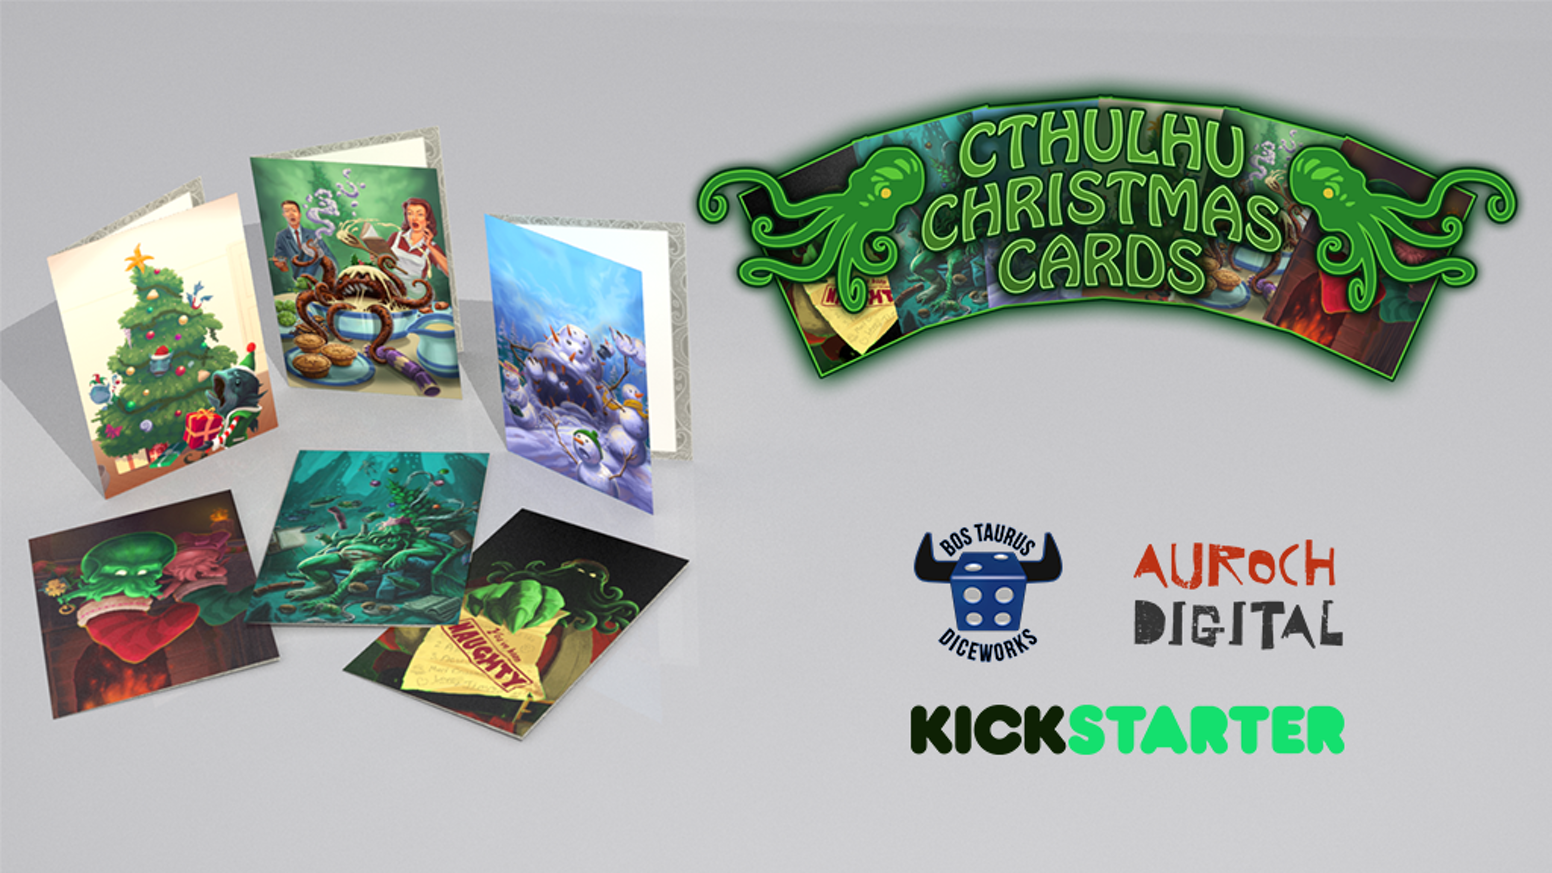 Cthulhu Christmas Cards by Auroch Digital — Kickstarter